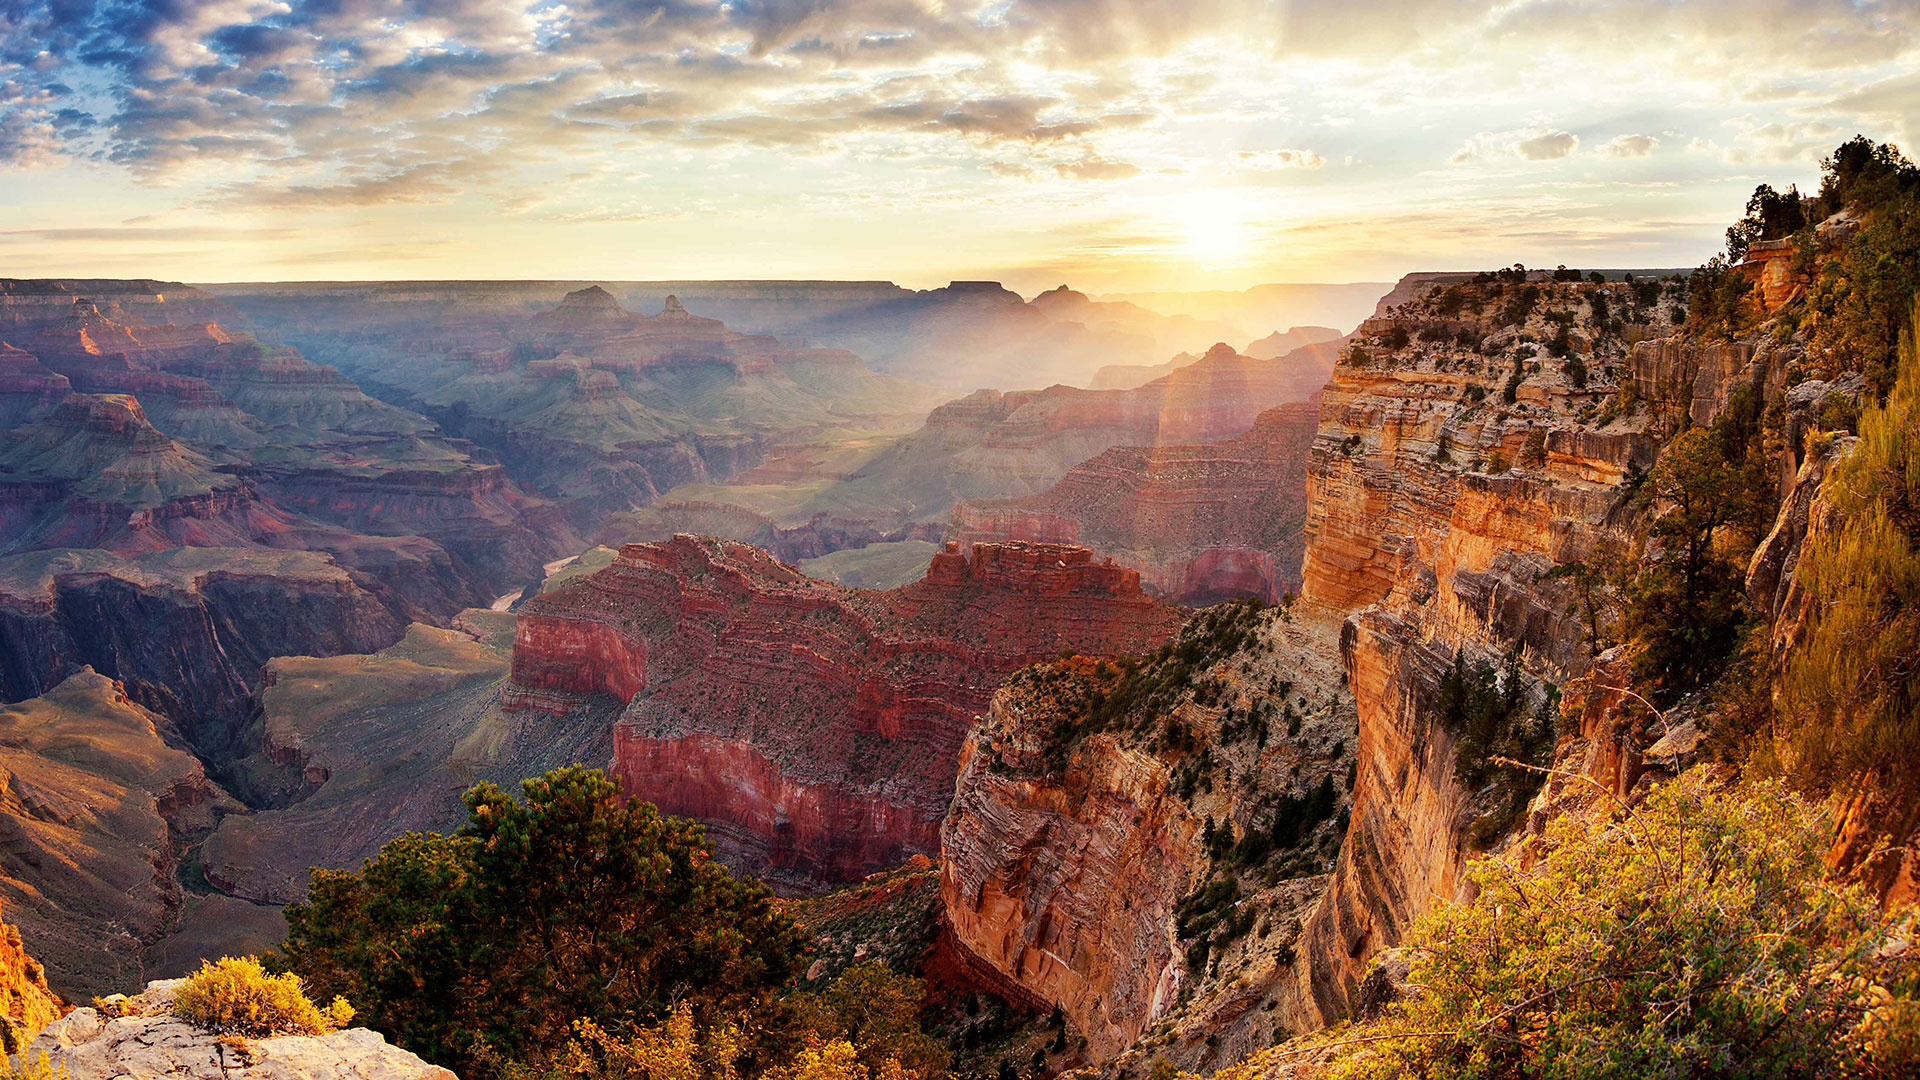 A sunlit section of the Grand Canyon National Park.